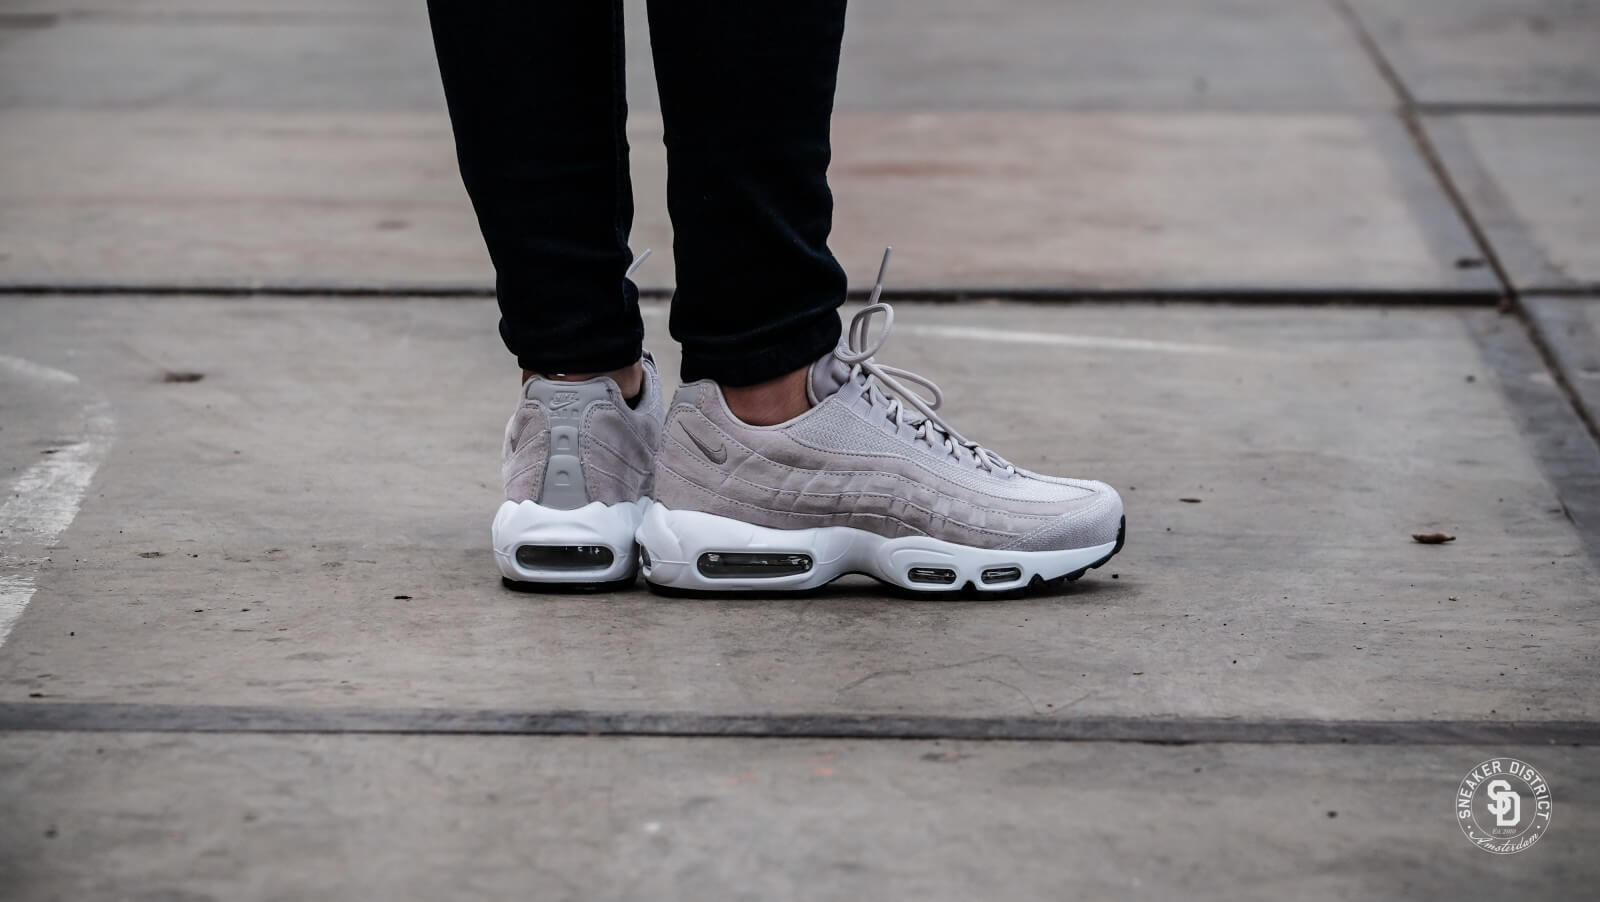 quality design 9cd4f 43507 ... Nike Womens Air Max 95 Premium Moon ParticleWhite outlet on sale c1503  48618 ...